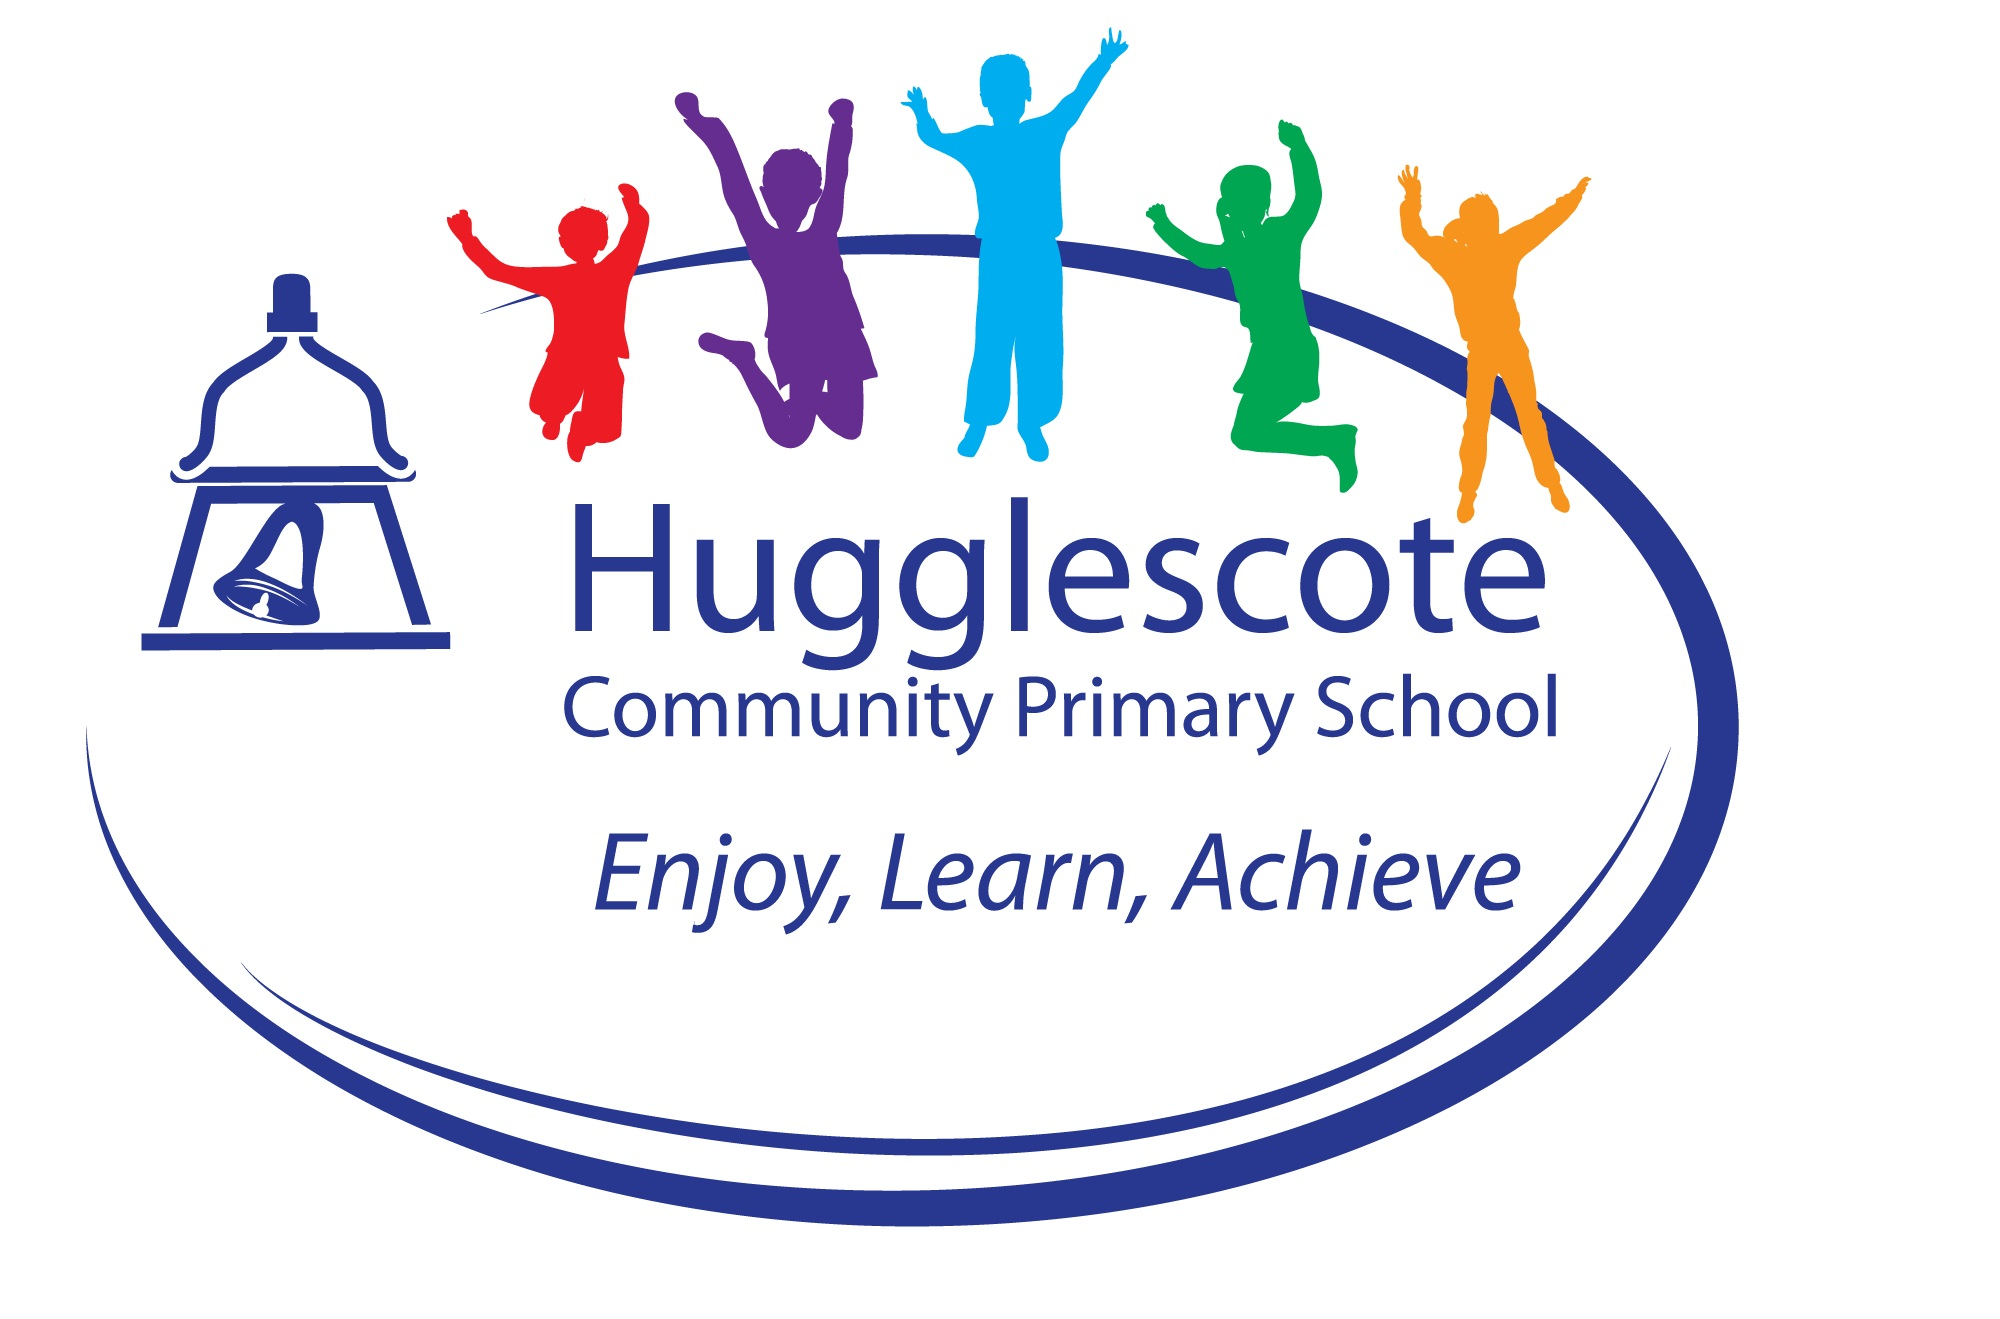 Hugglescote Community Primary School